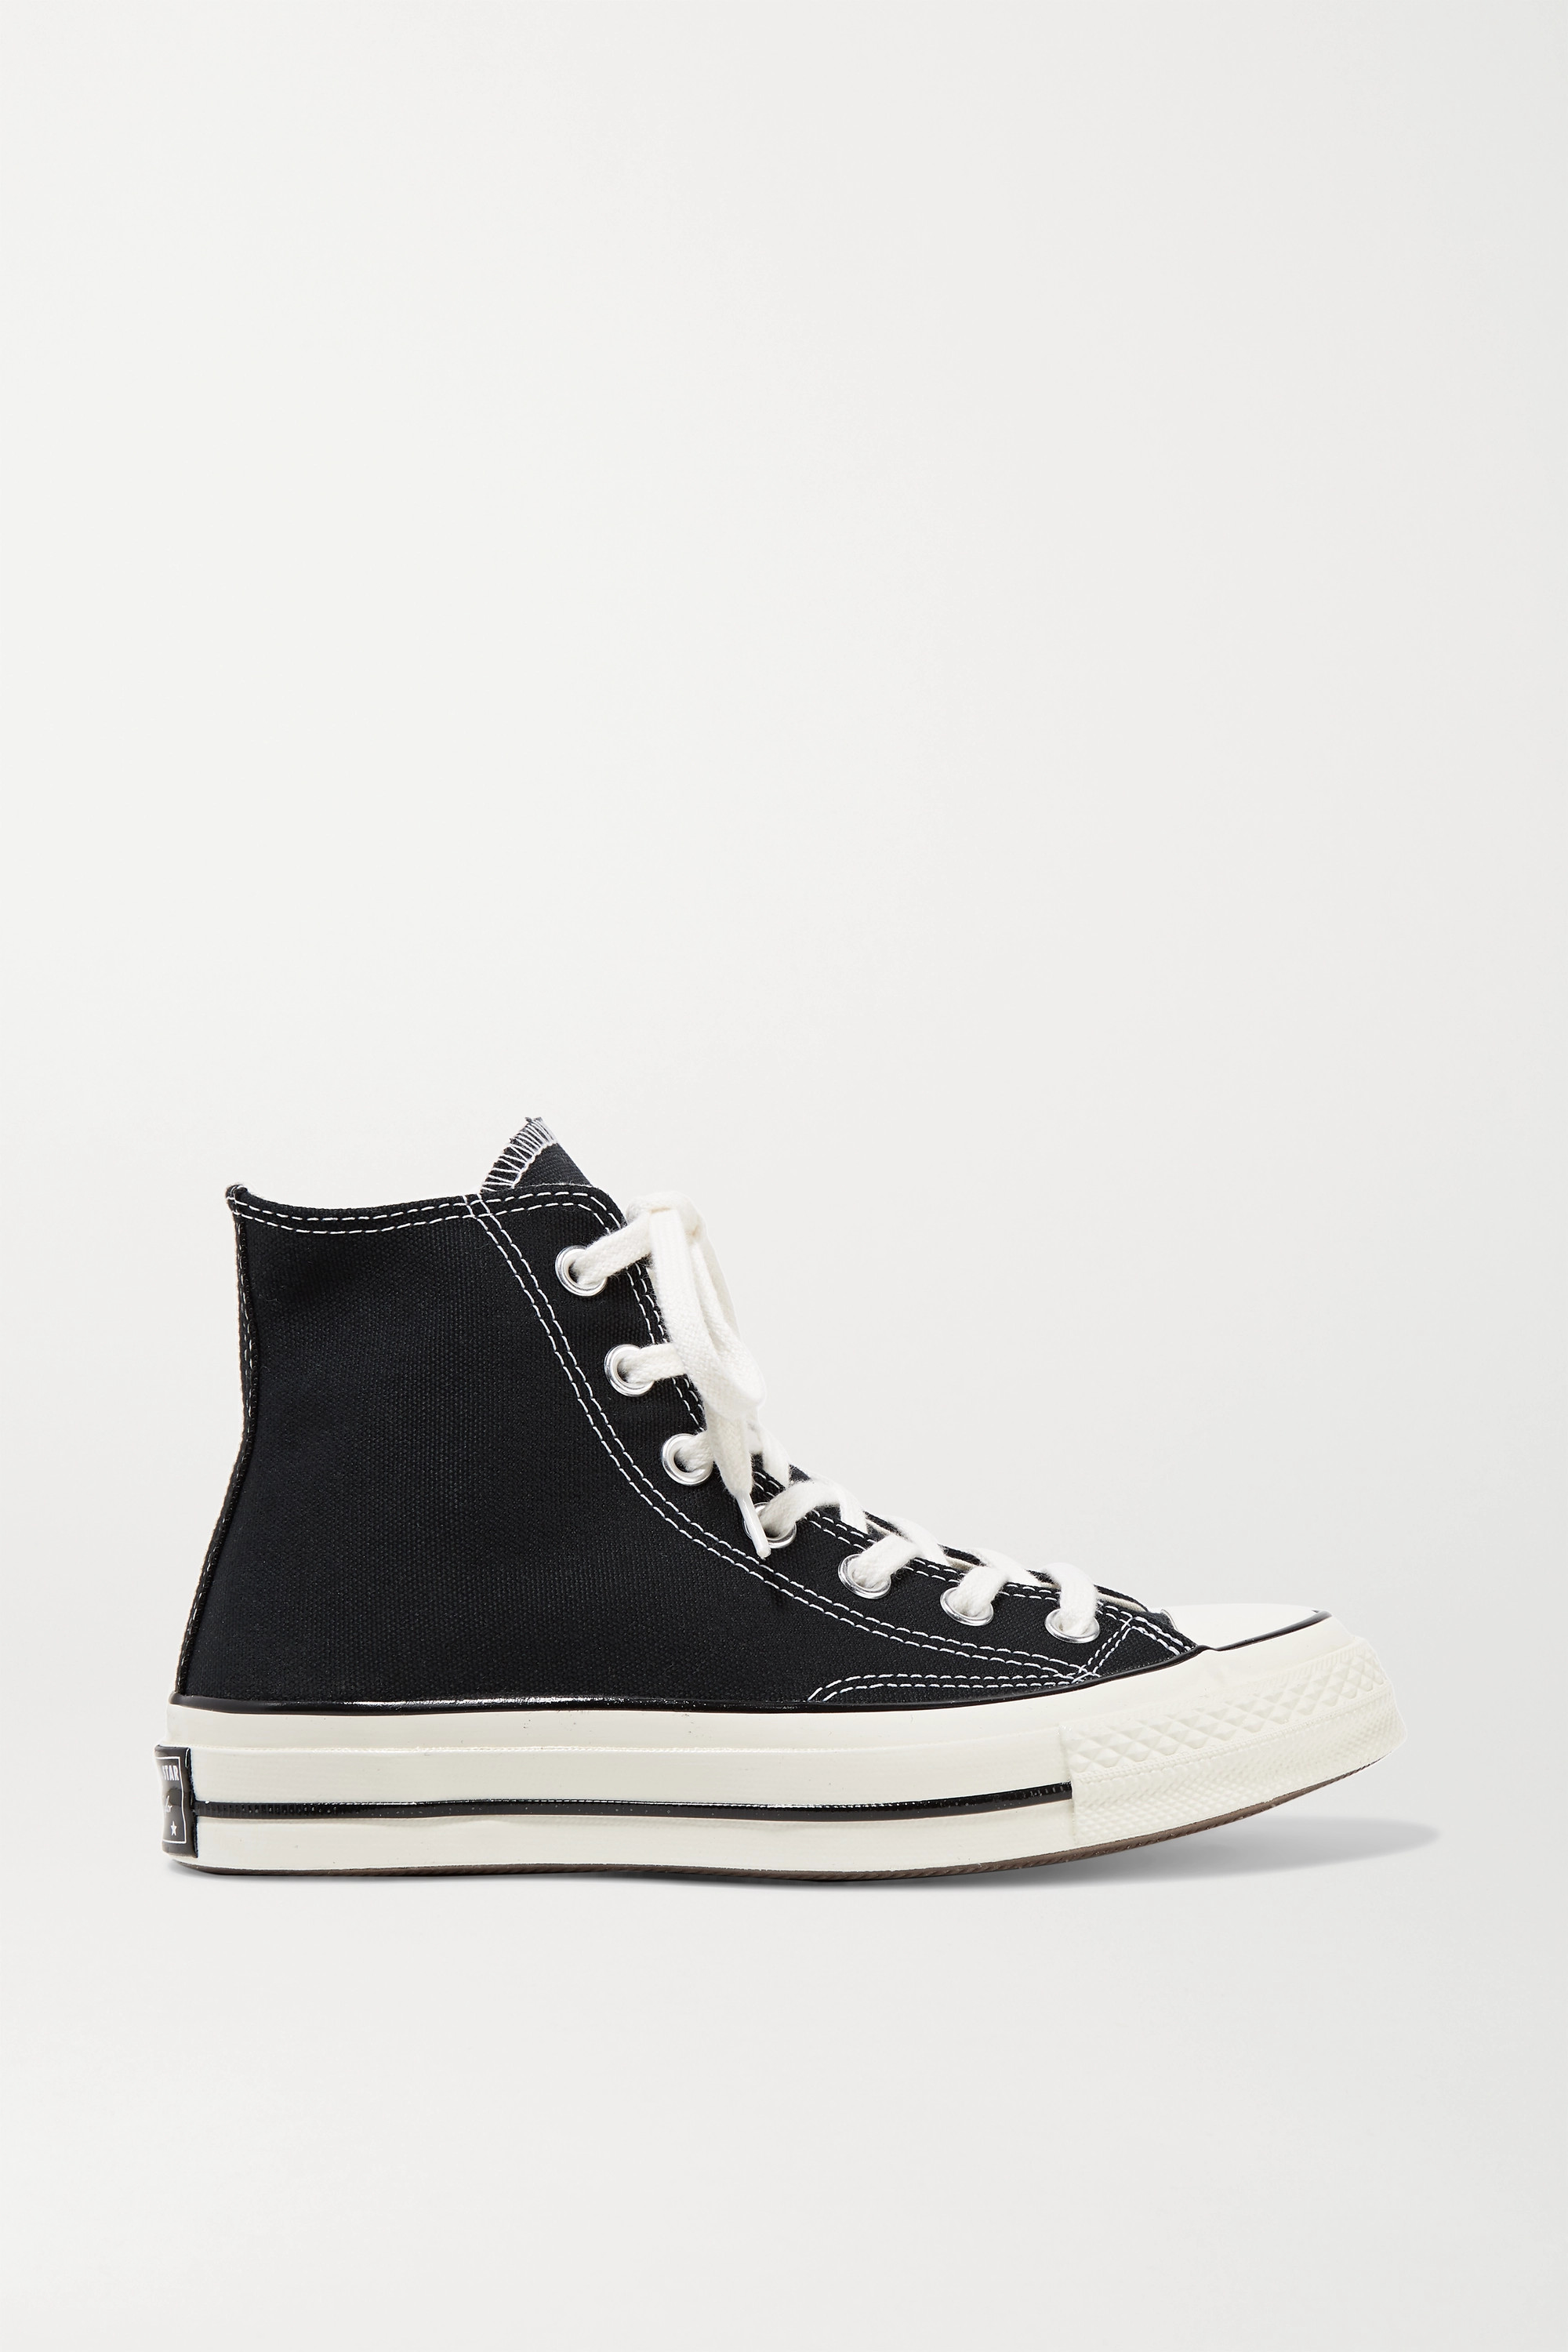 Star 70 canvas high-top sneakers